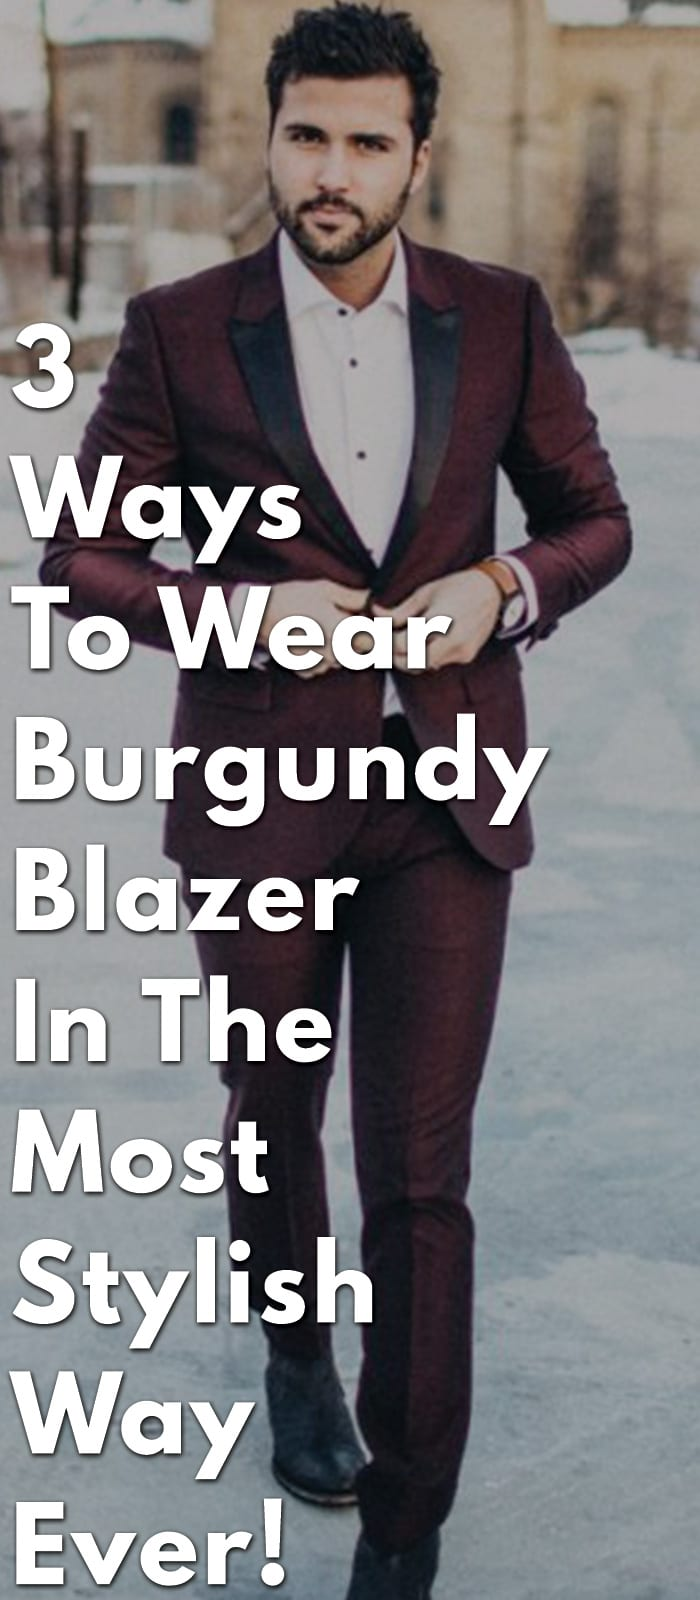 3-Ways-To-Wear-Burgundy-Blazer-In-The-Most-Stylish-Way-Ever!